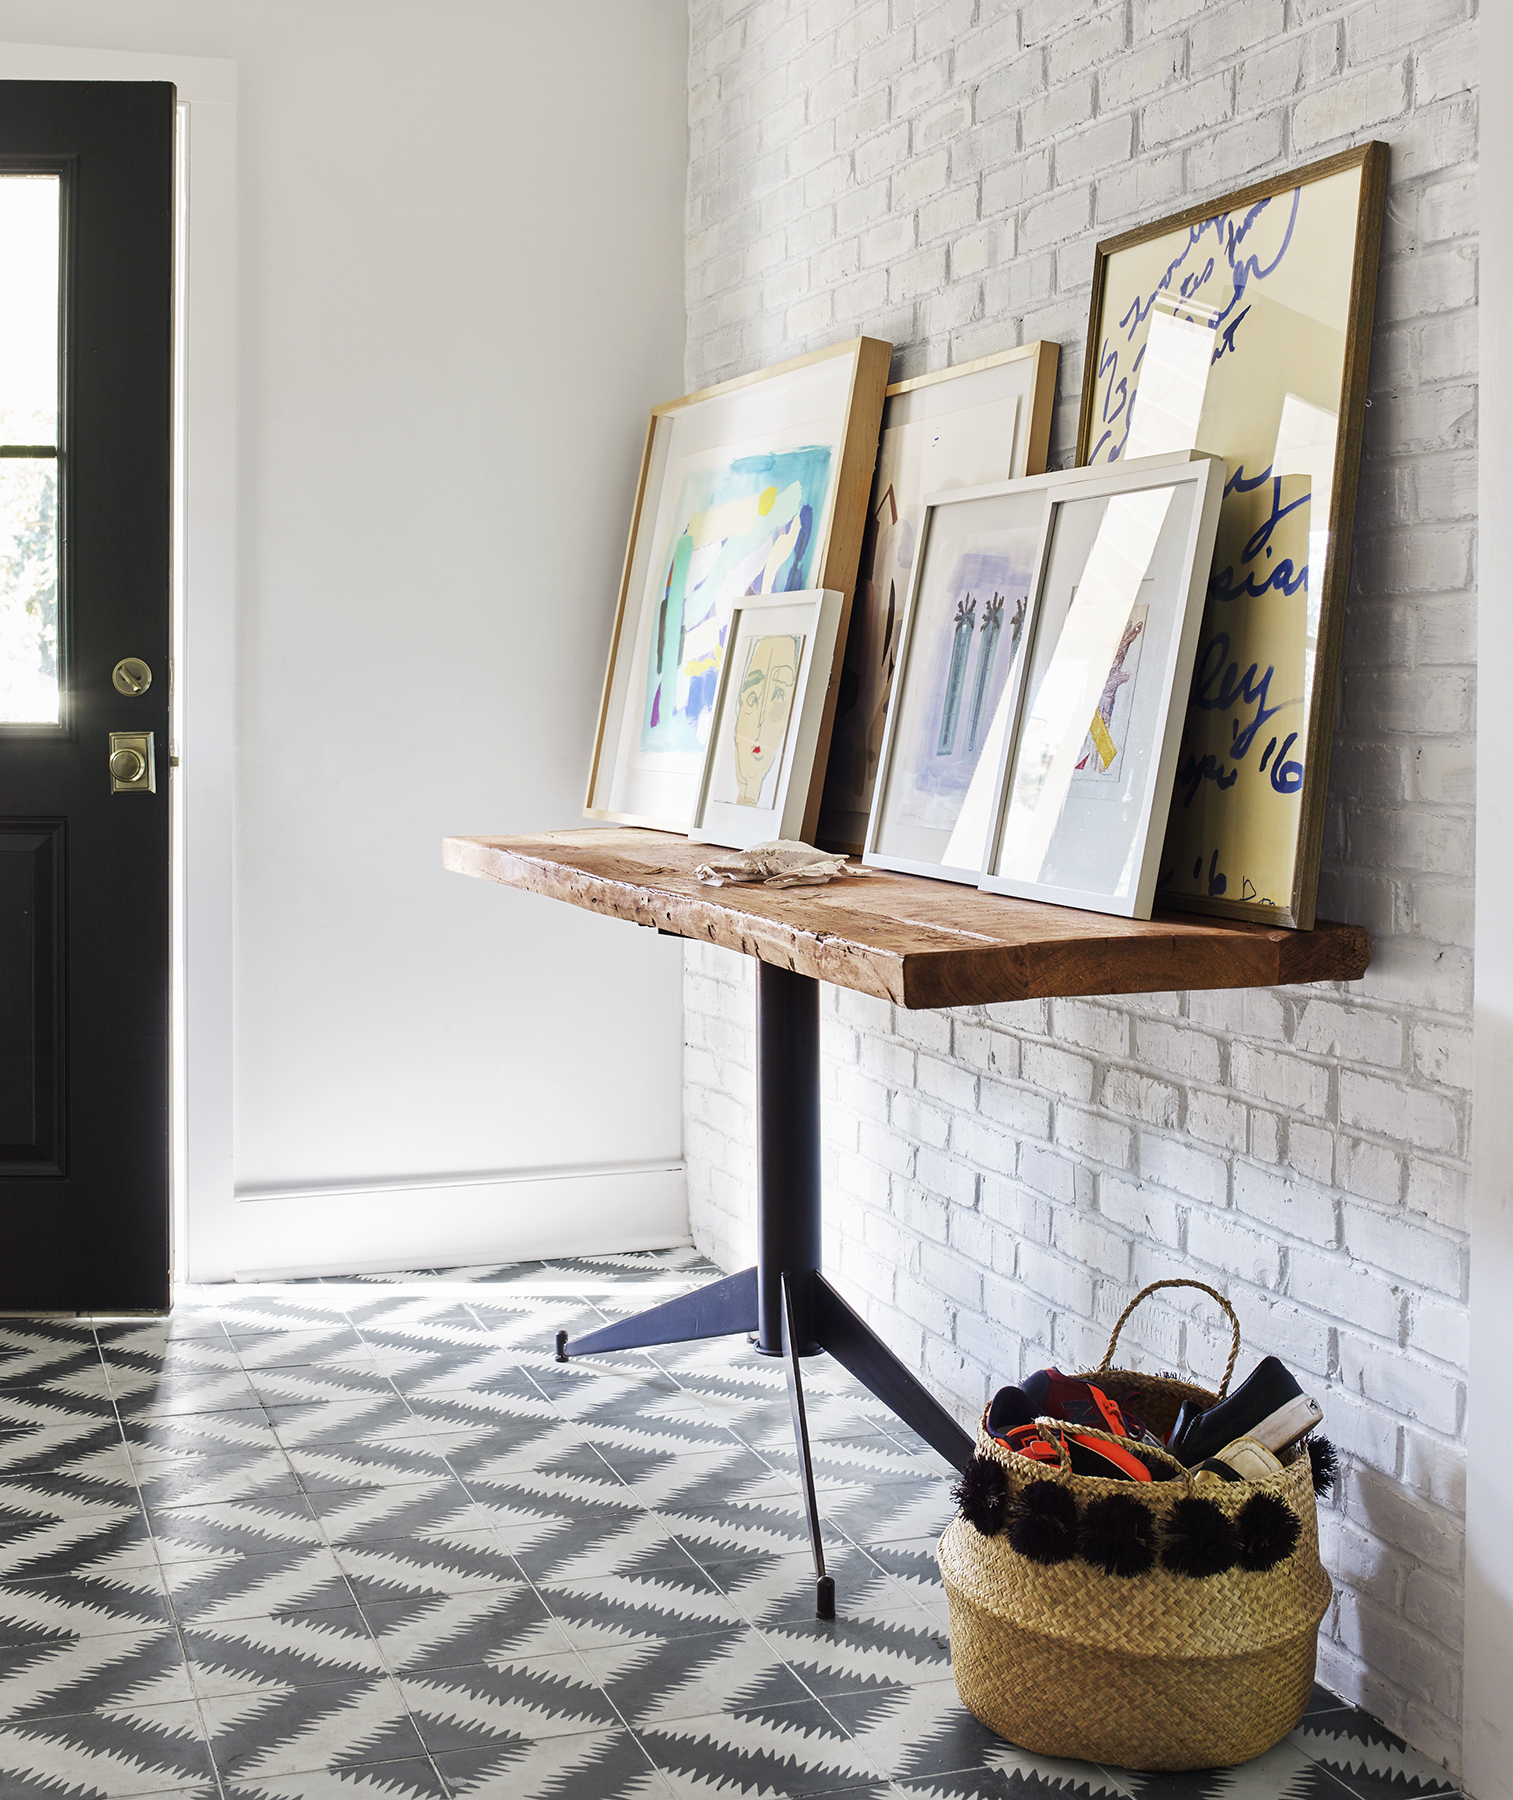 Entryway with patterned tile and white brick wall